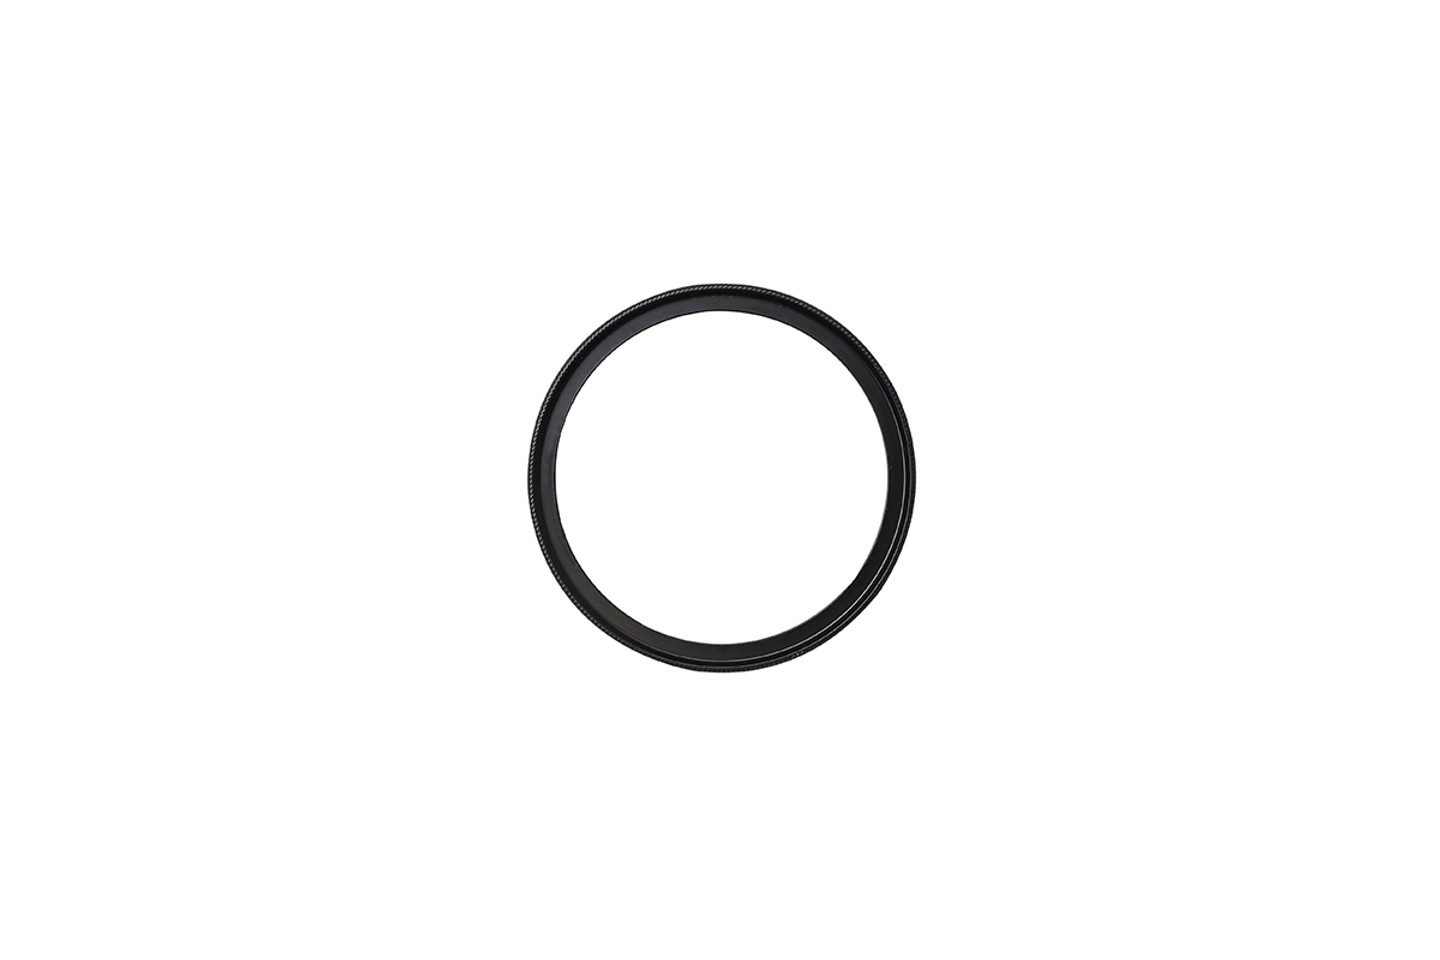 Zenmuse X5S Balancing Ring (Olympus 12mm, F/2.0& 17mm, F/1.8&25mm,F/1.8 ASPH Prime Lens)